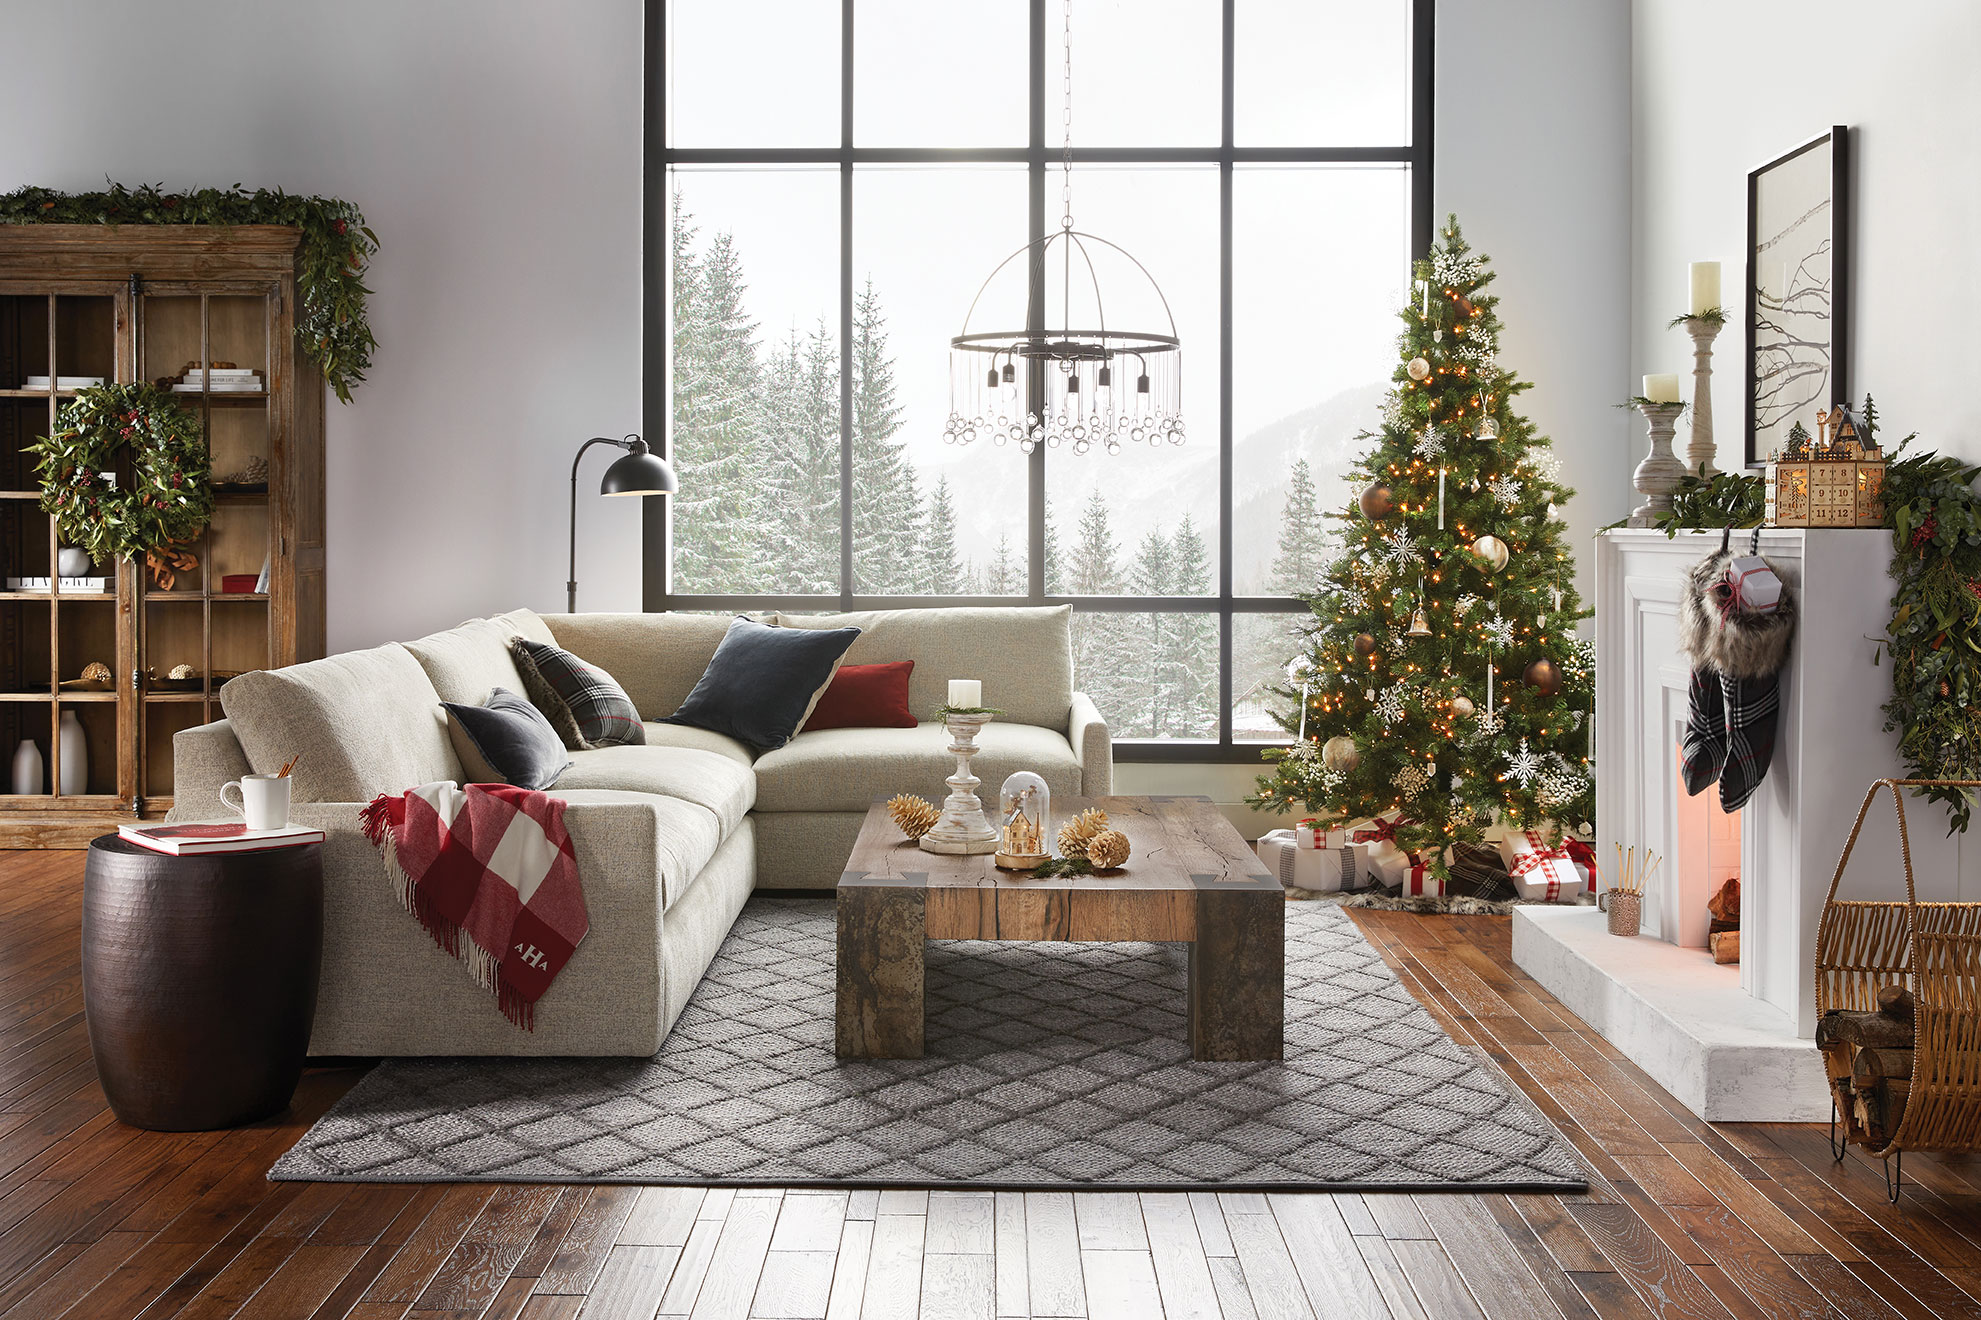 arhaus couch christmas tree fireplace